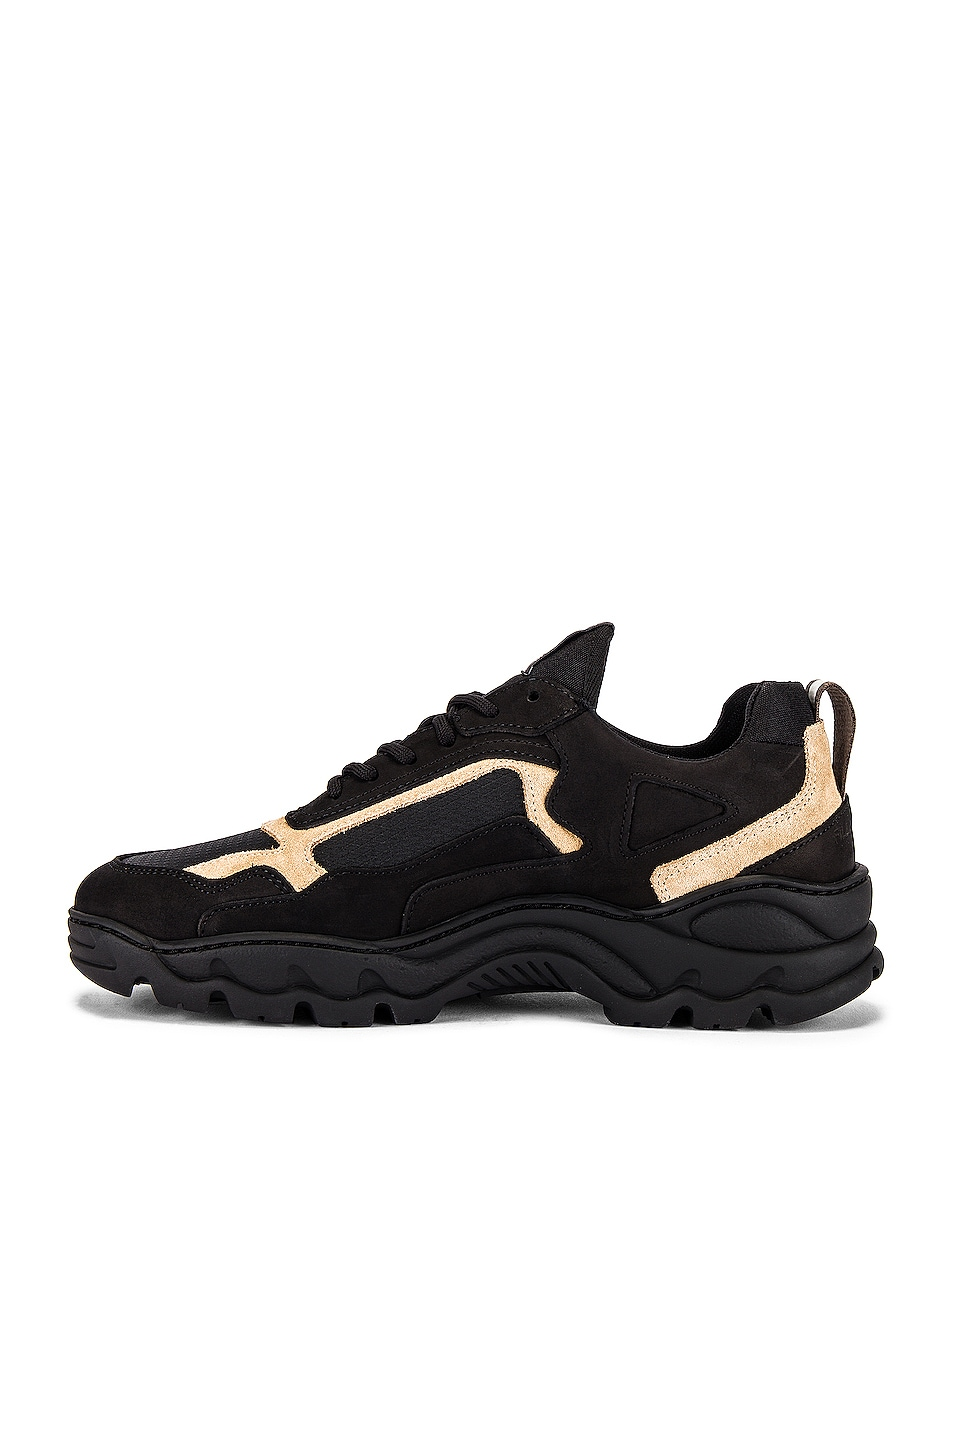 Image 5 of Filling Pieces Trimix Sneaker in All Black